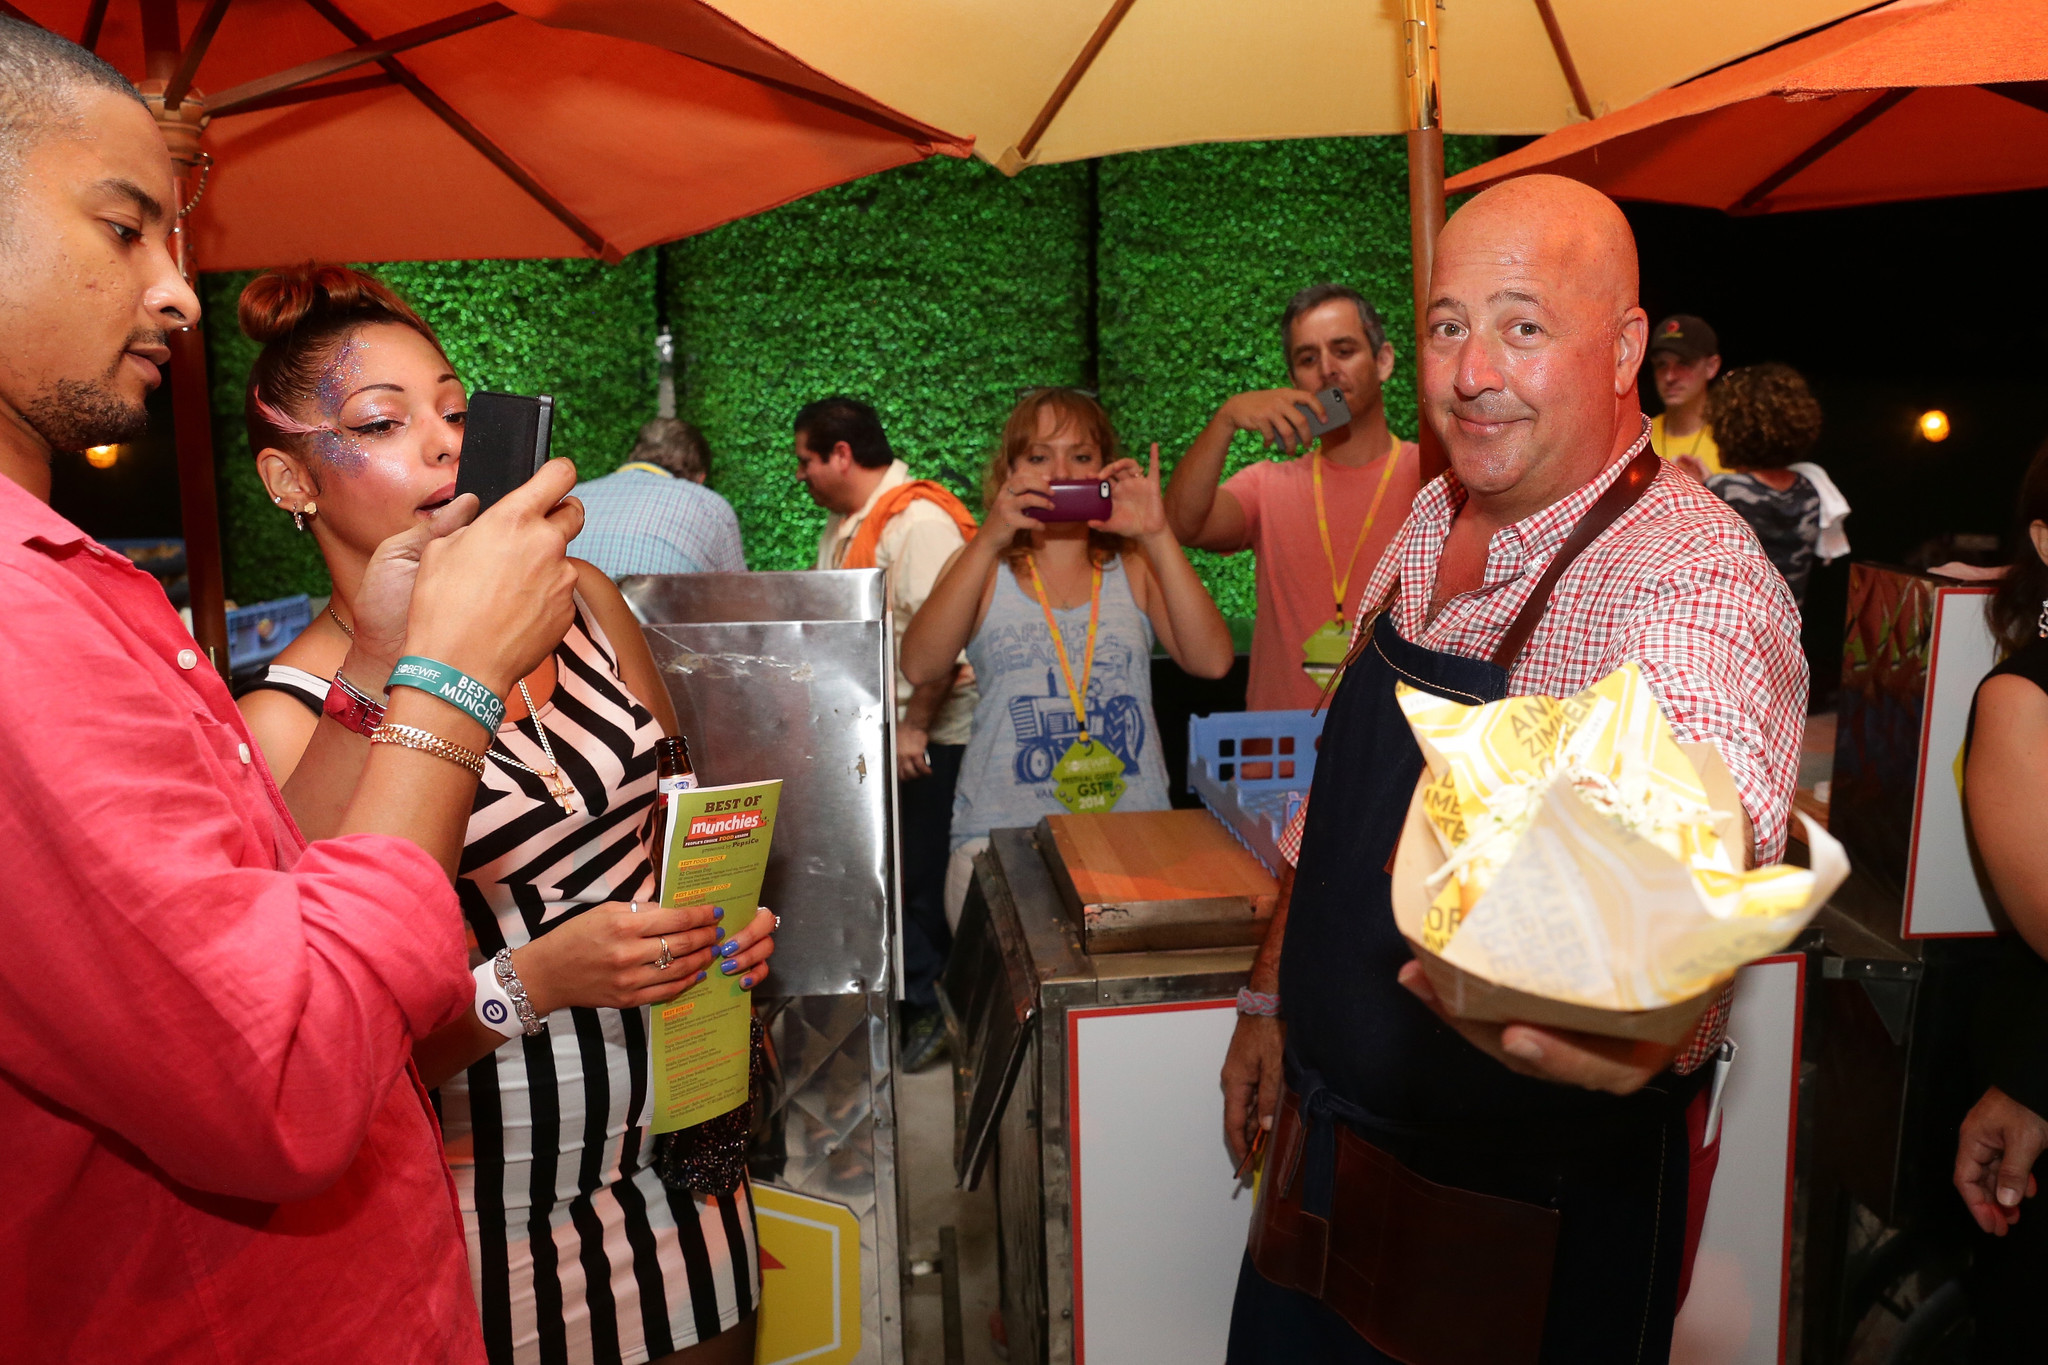 Celebrity-spotting at the South Beach Wine & Food Festival - Best of The Munchies: People